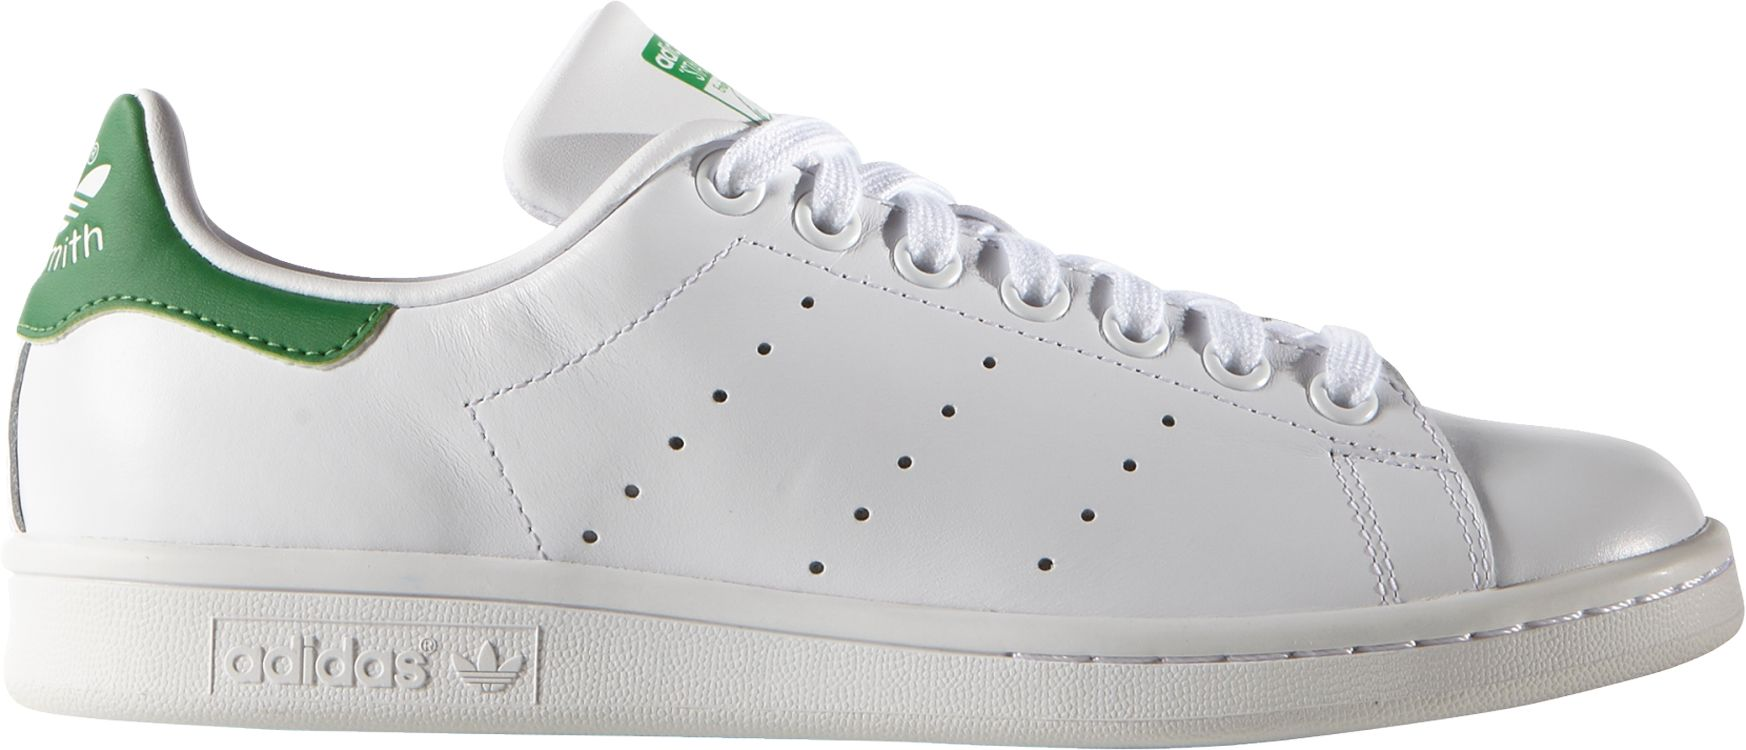 adidas originals unisex adults stan smith sneakers